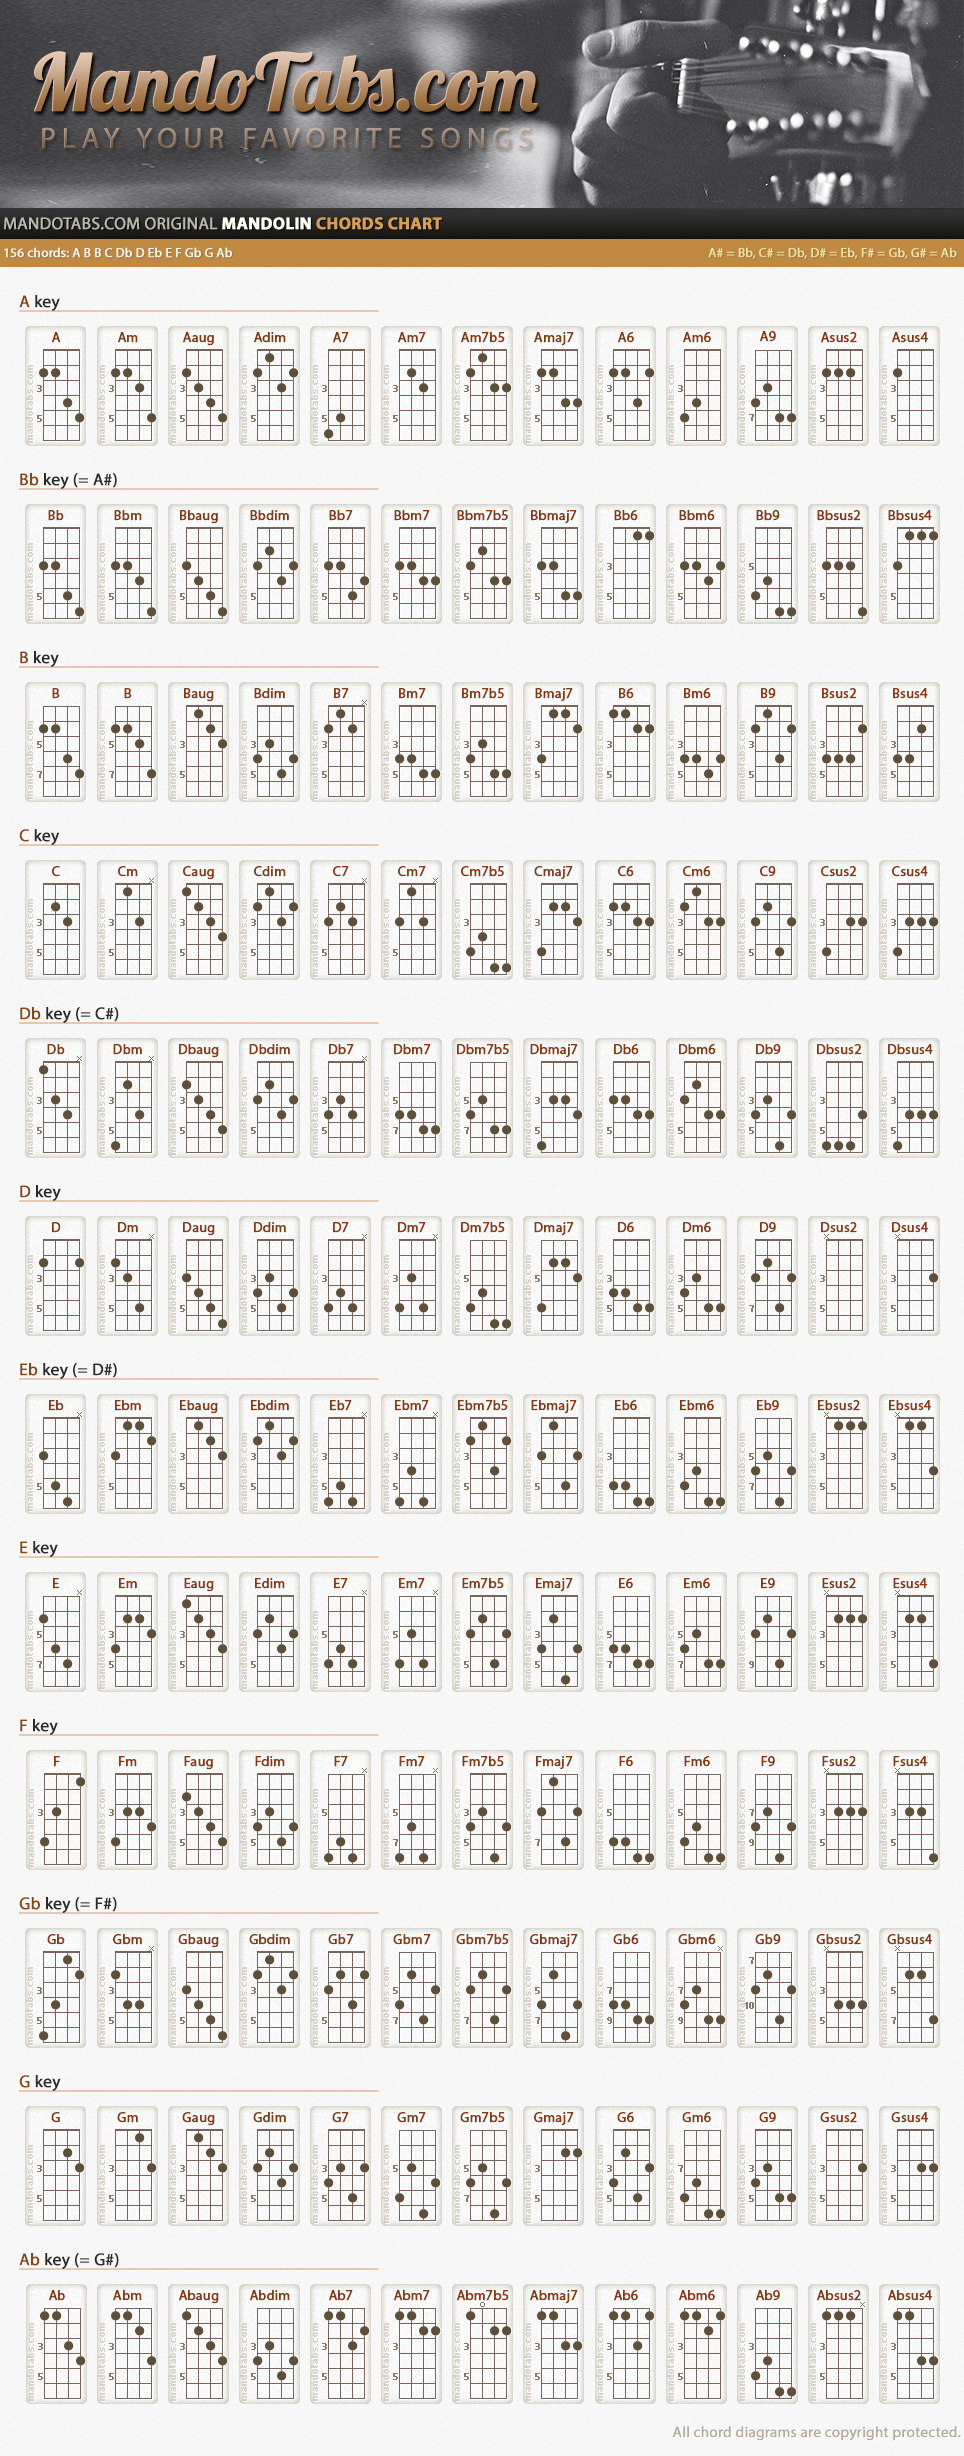 Complete Guitar Chords Chart Luxury 1000 Ideas About Mandolin On Pinterest